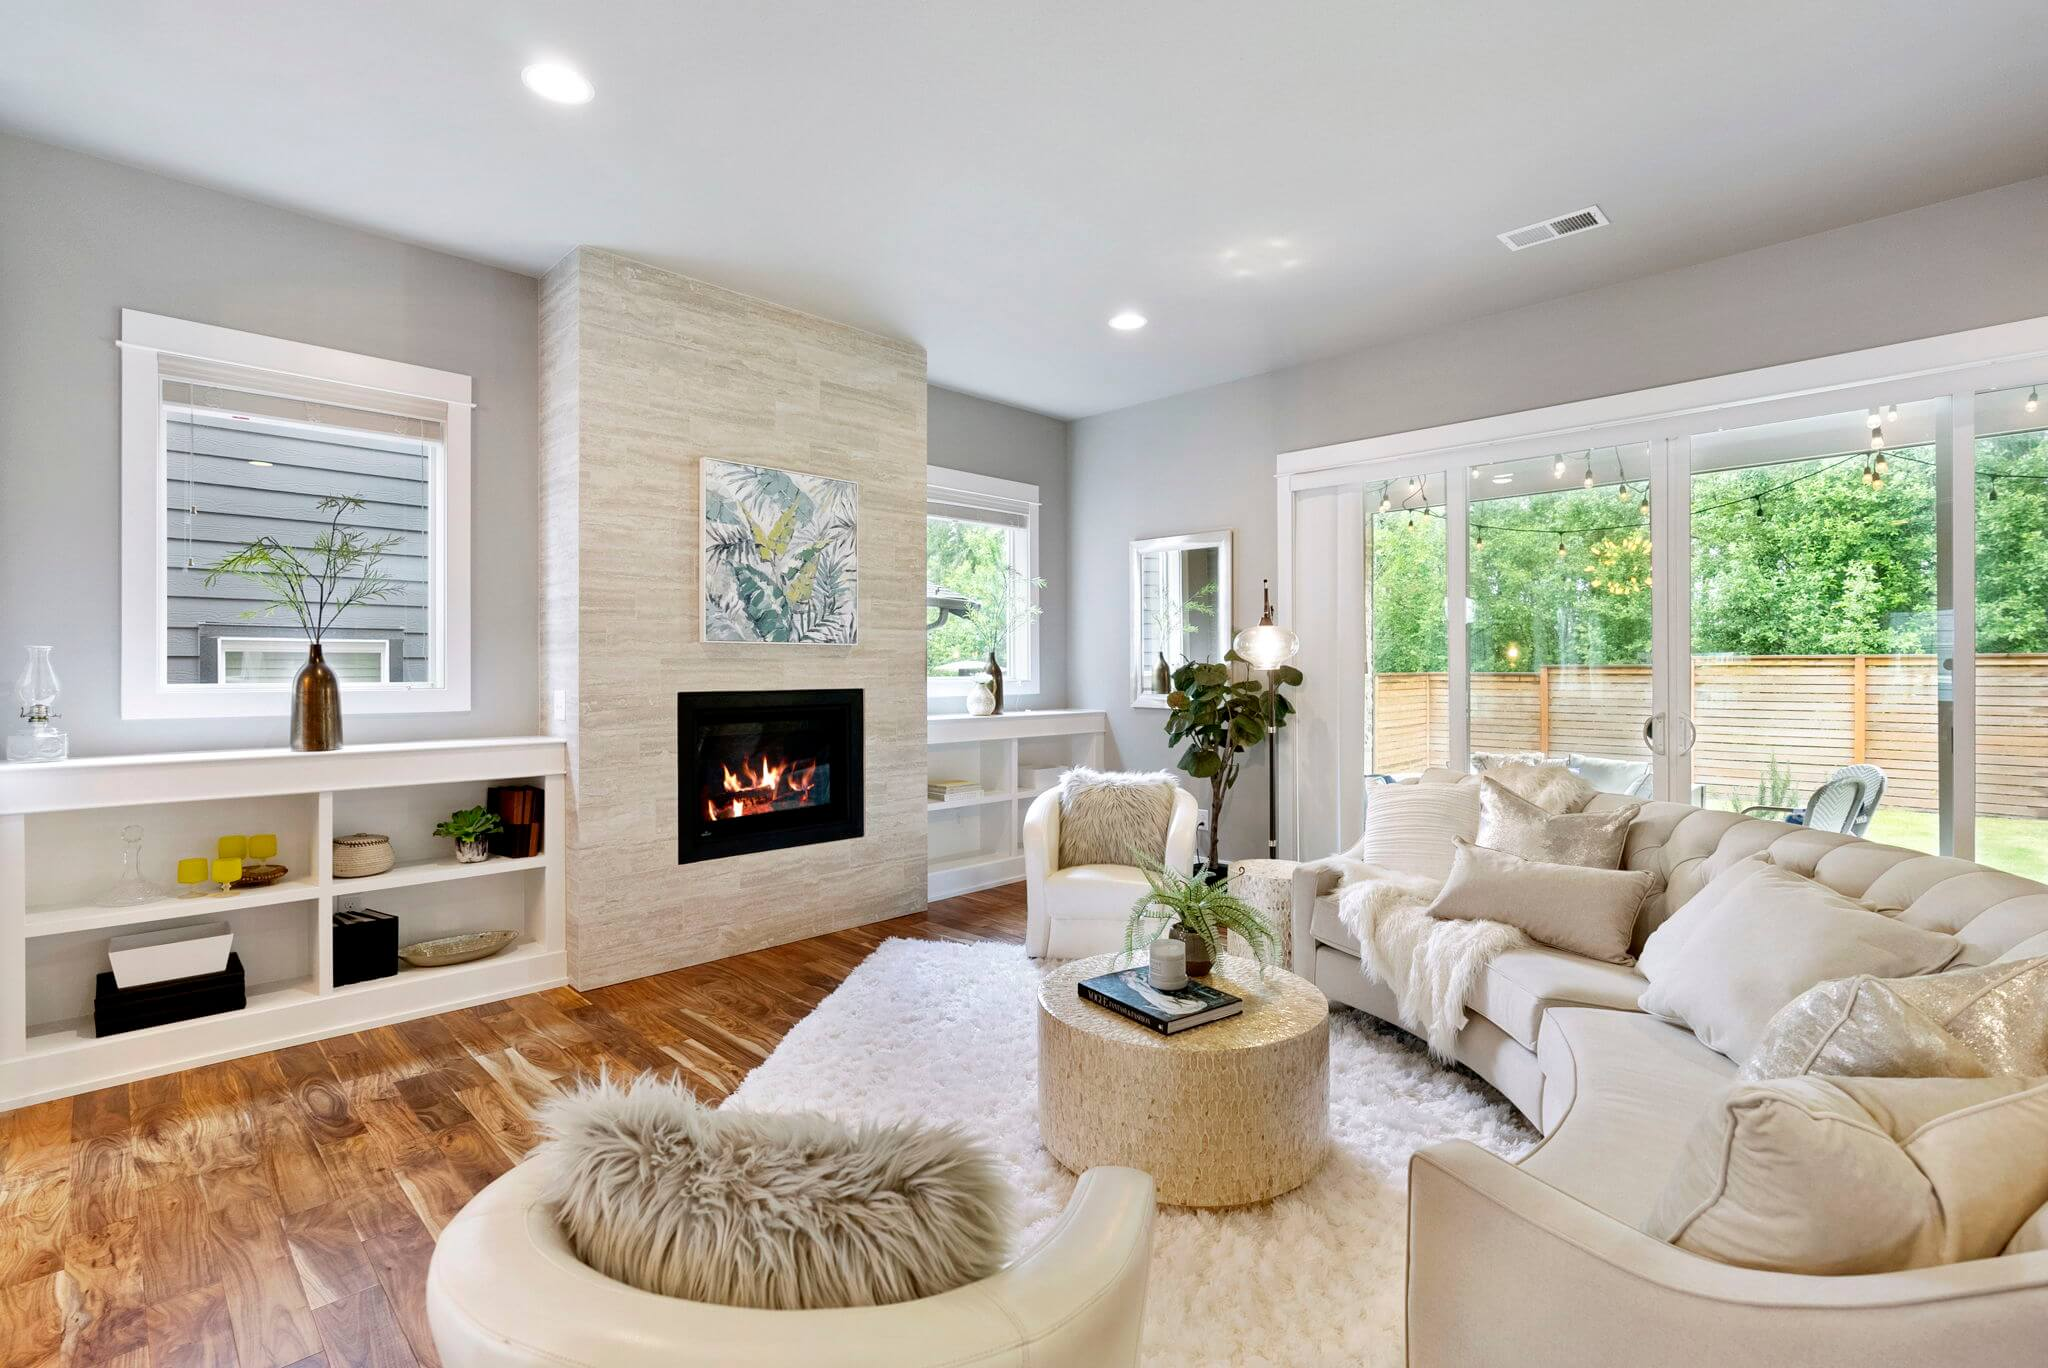 Built-in bookshelves and stone fireplace surround